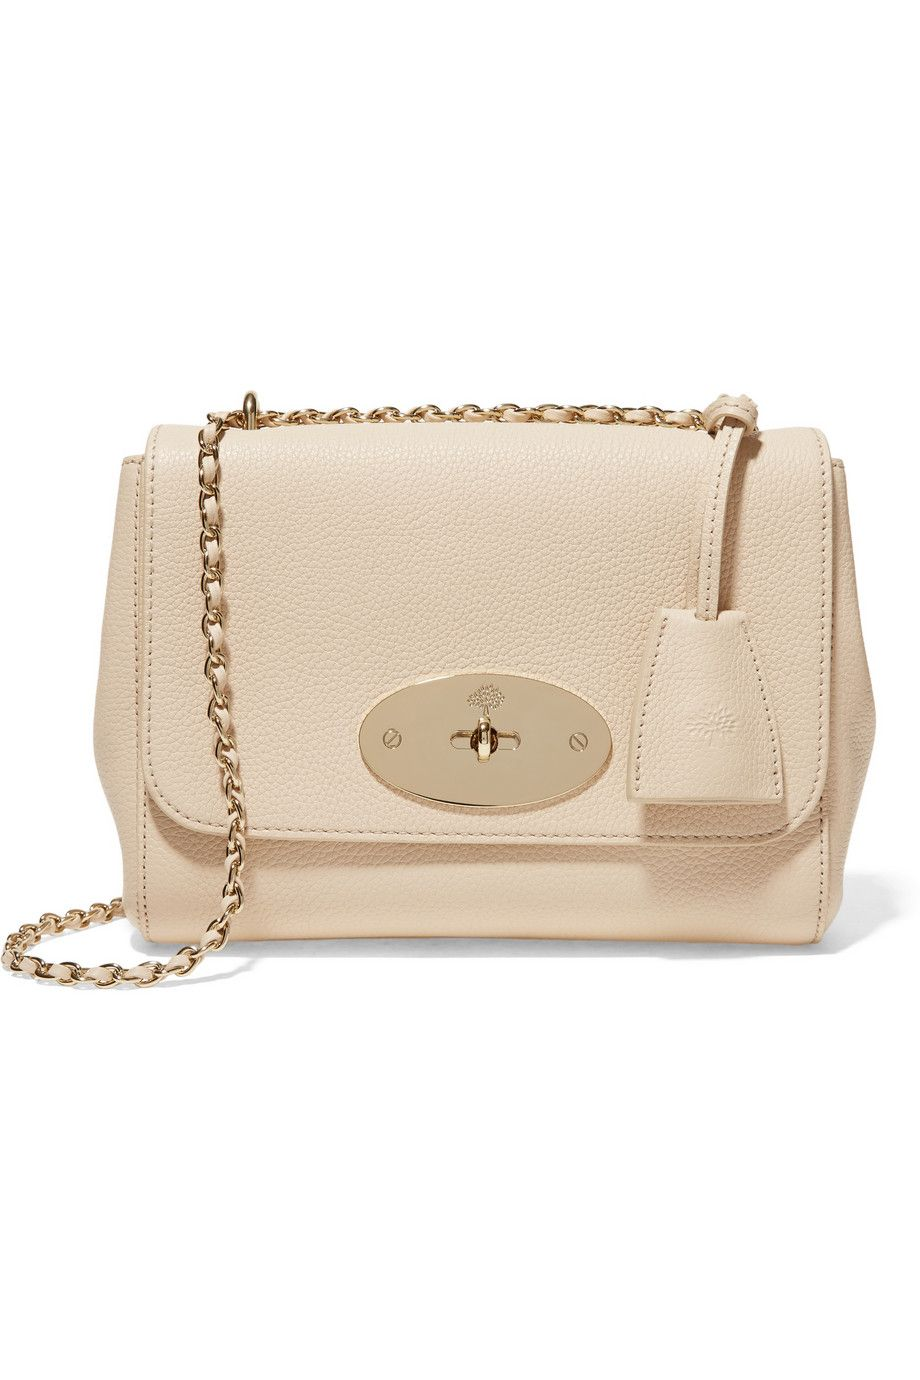 Mulberry | Lily small textured-leather shoulder bag | NET-A-PORTER.COM